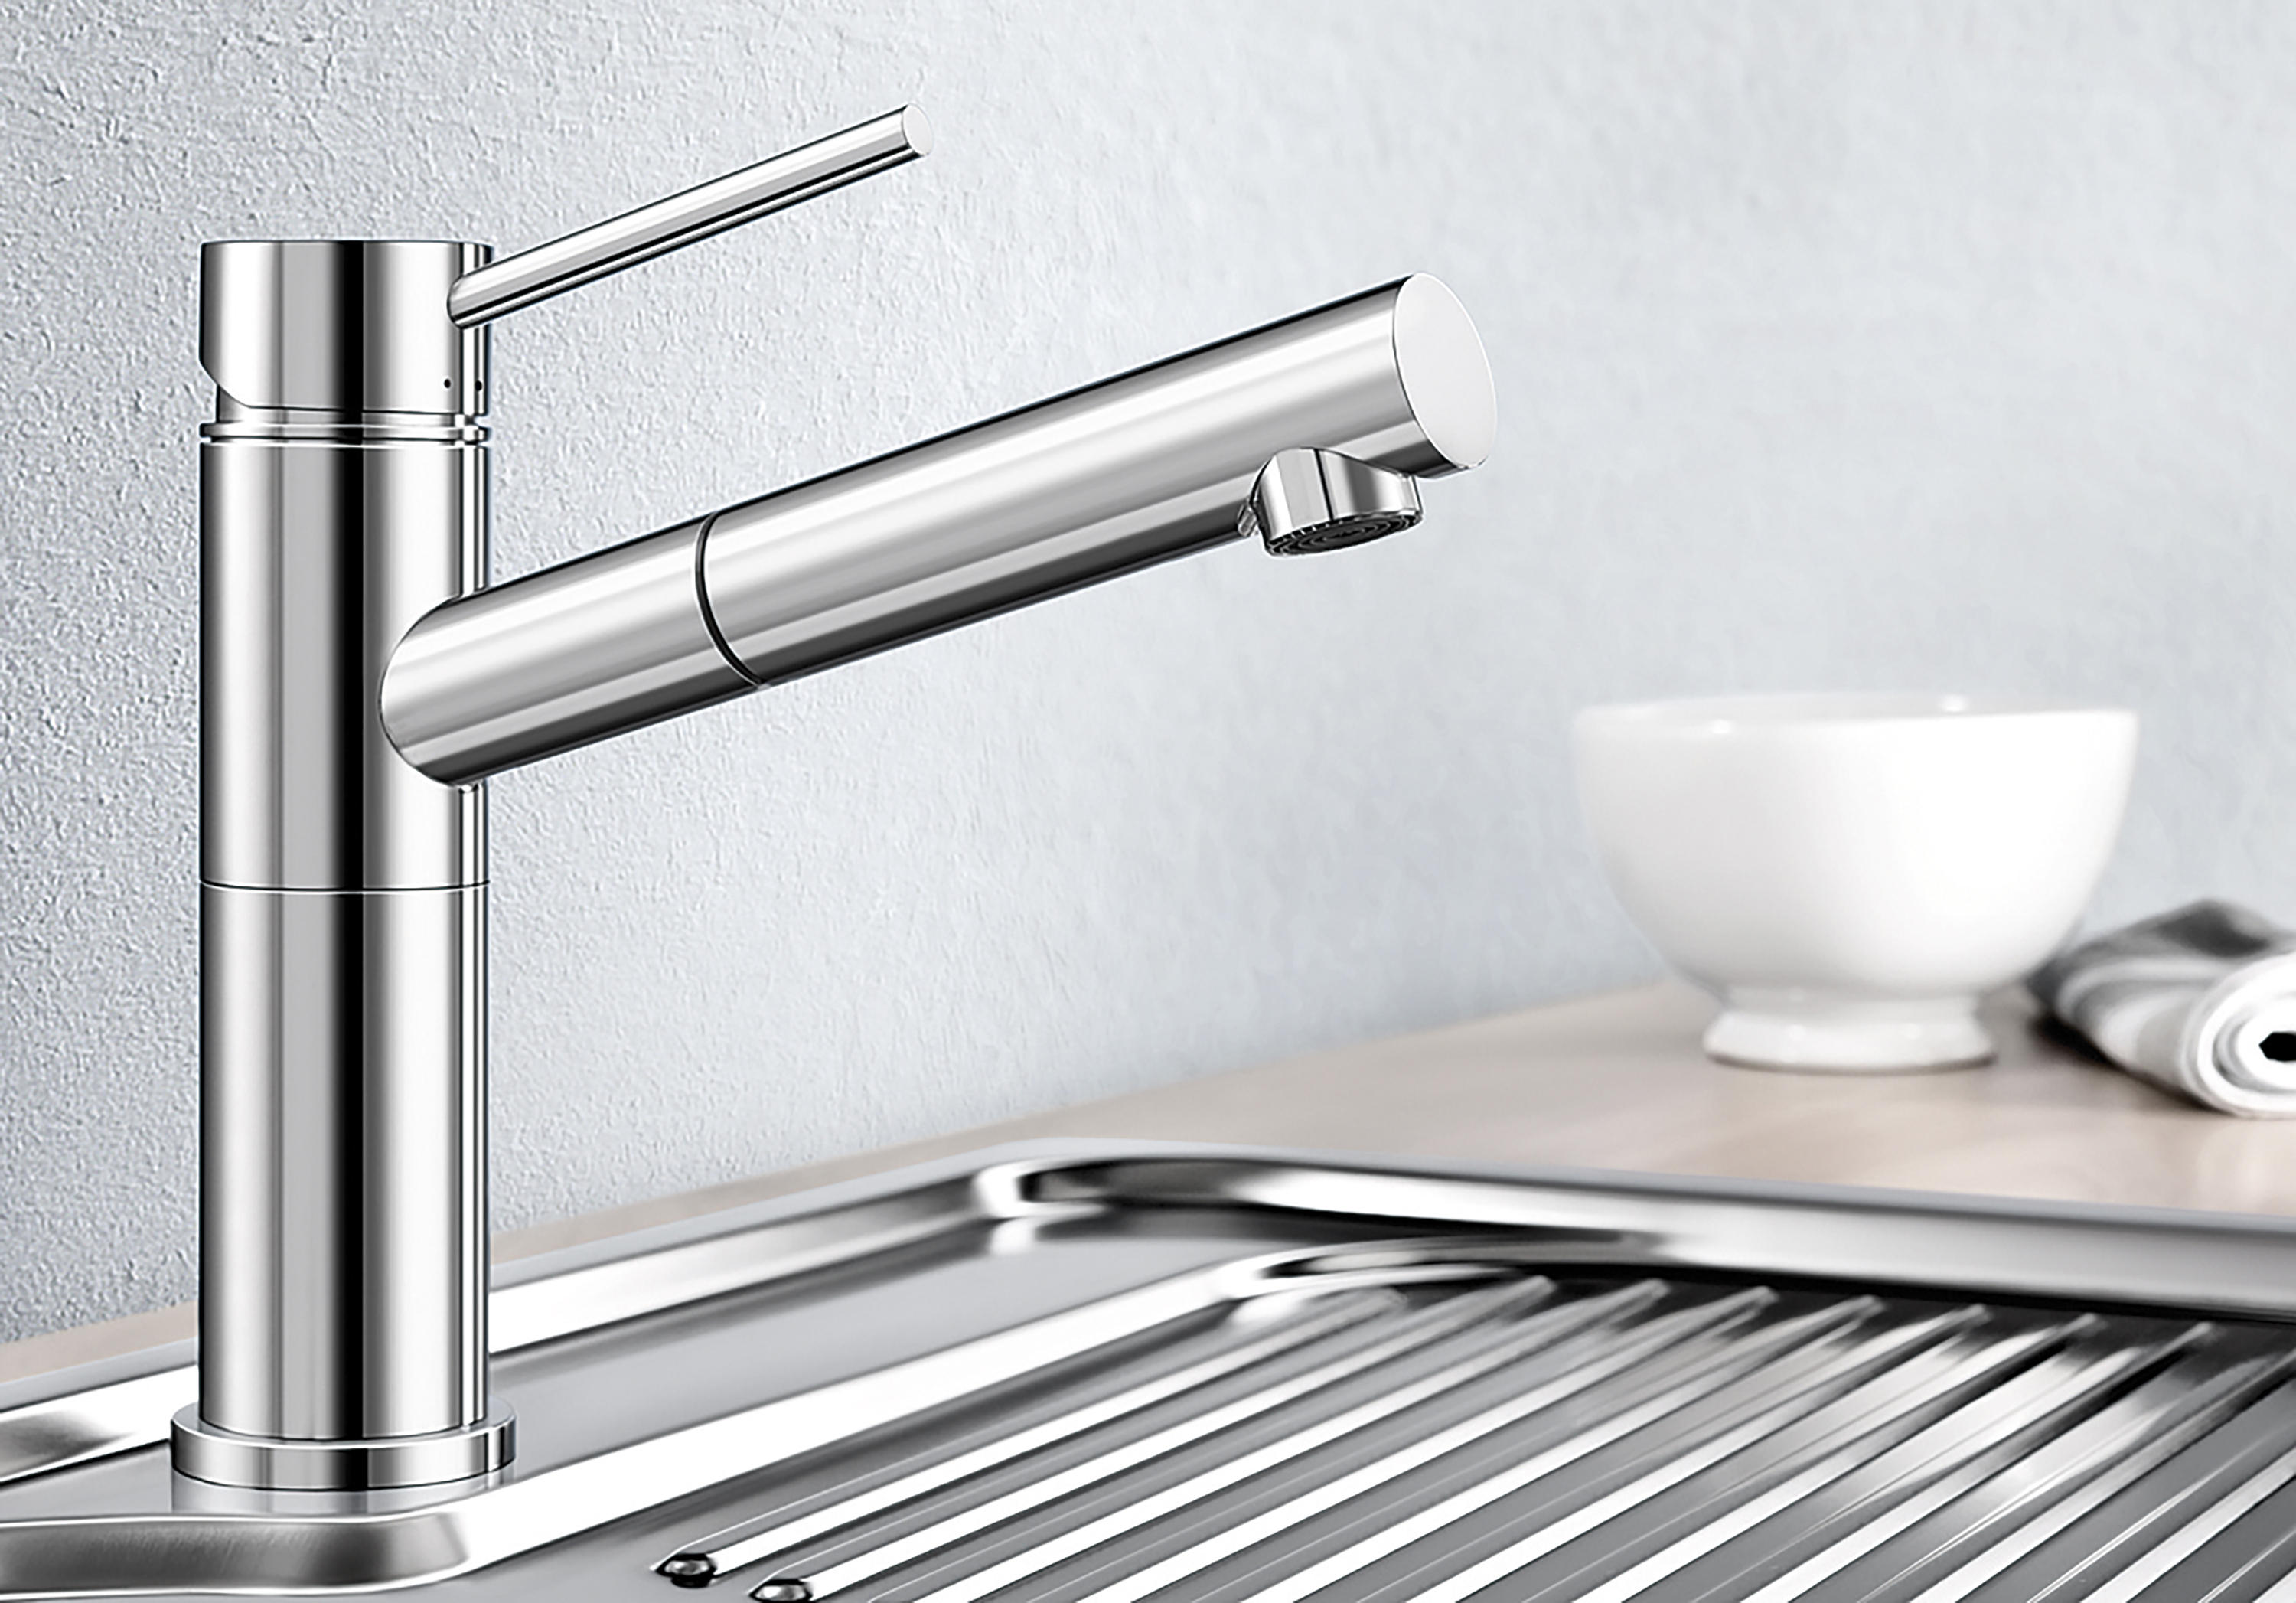 blanco alta chrome kitchen taps from blanco architonic. Black Bedroom Furniture Sets. Home Design Ideas